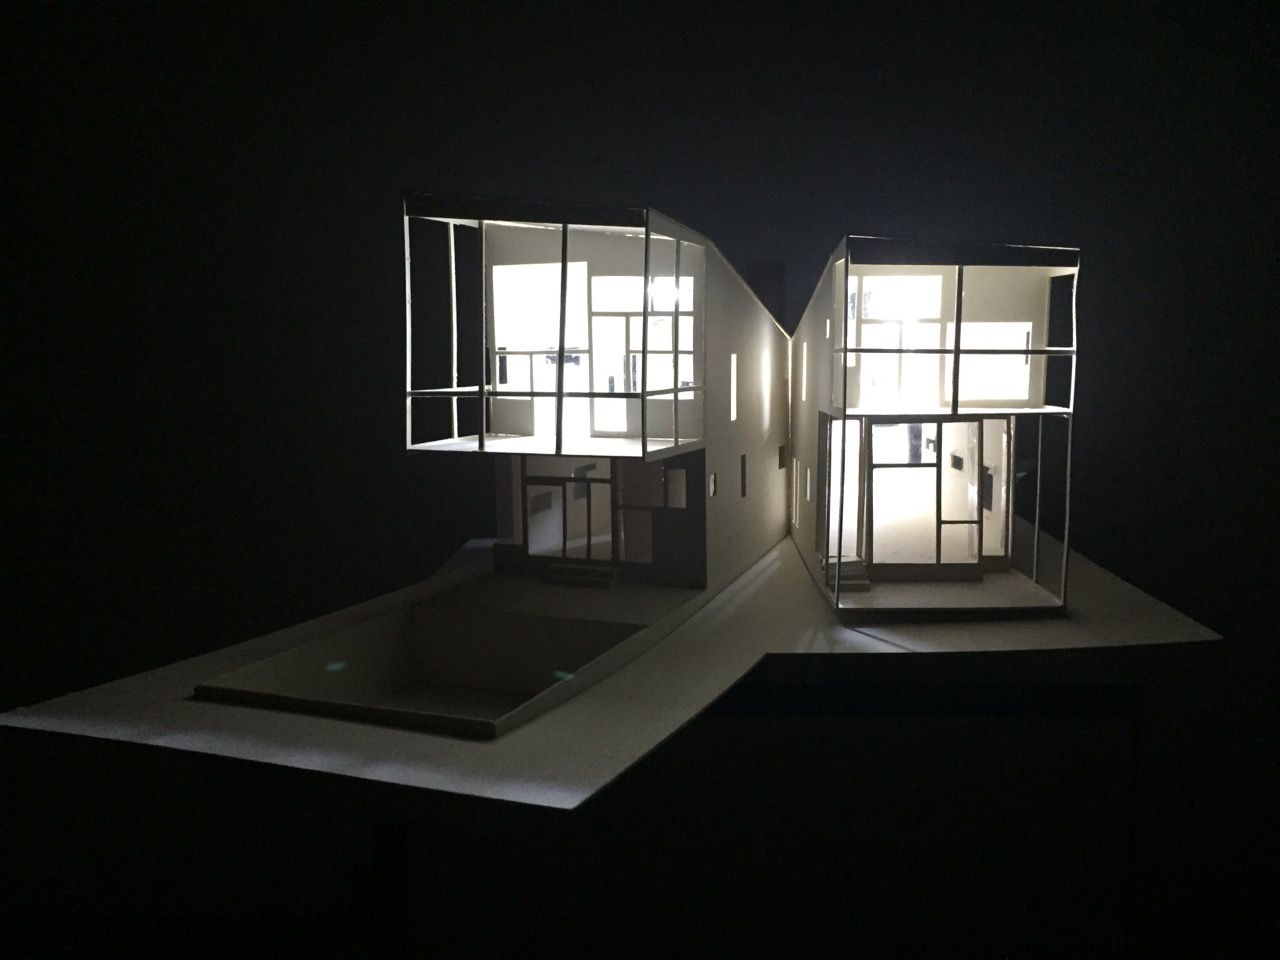 Y House by Steven Holl 3Dmodel 150 Architecture model